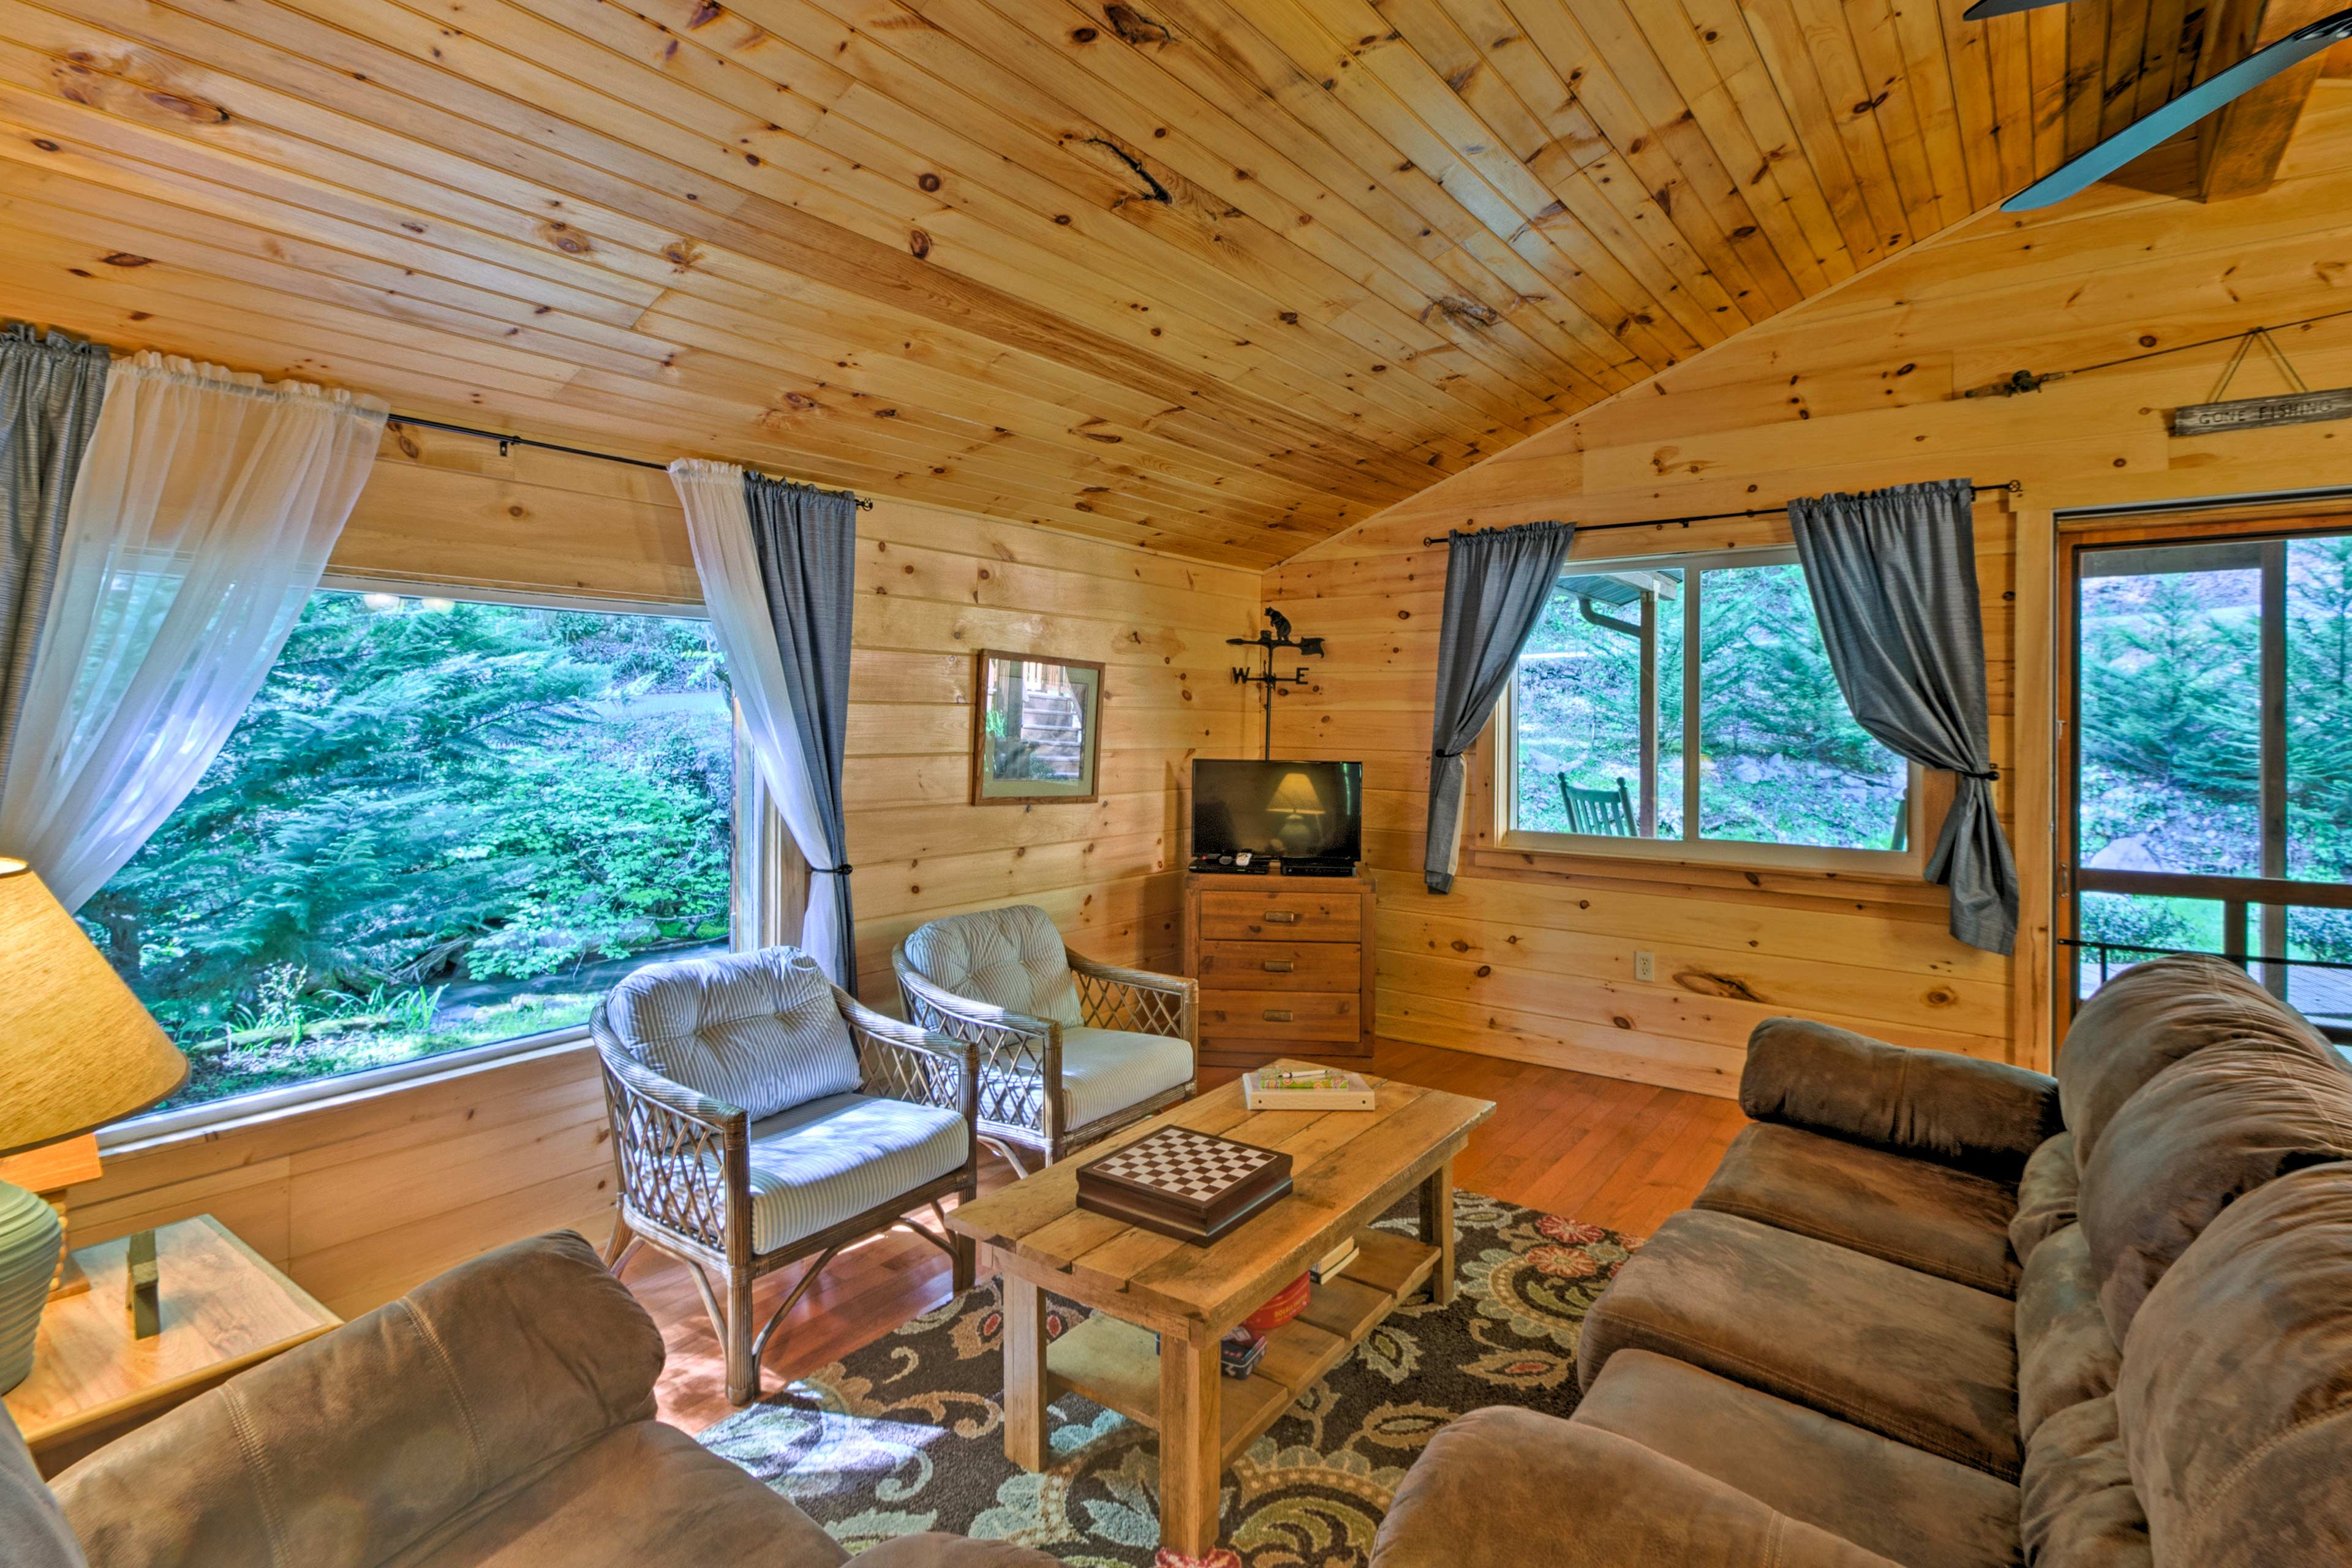 Take in the scenic forest views from inside the comfort of the cabin.